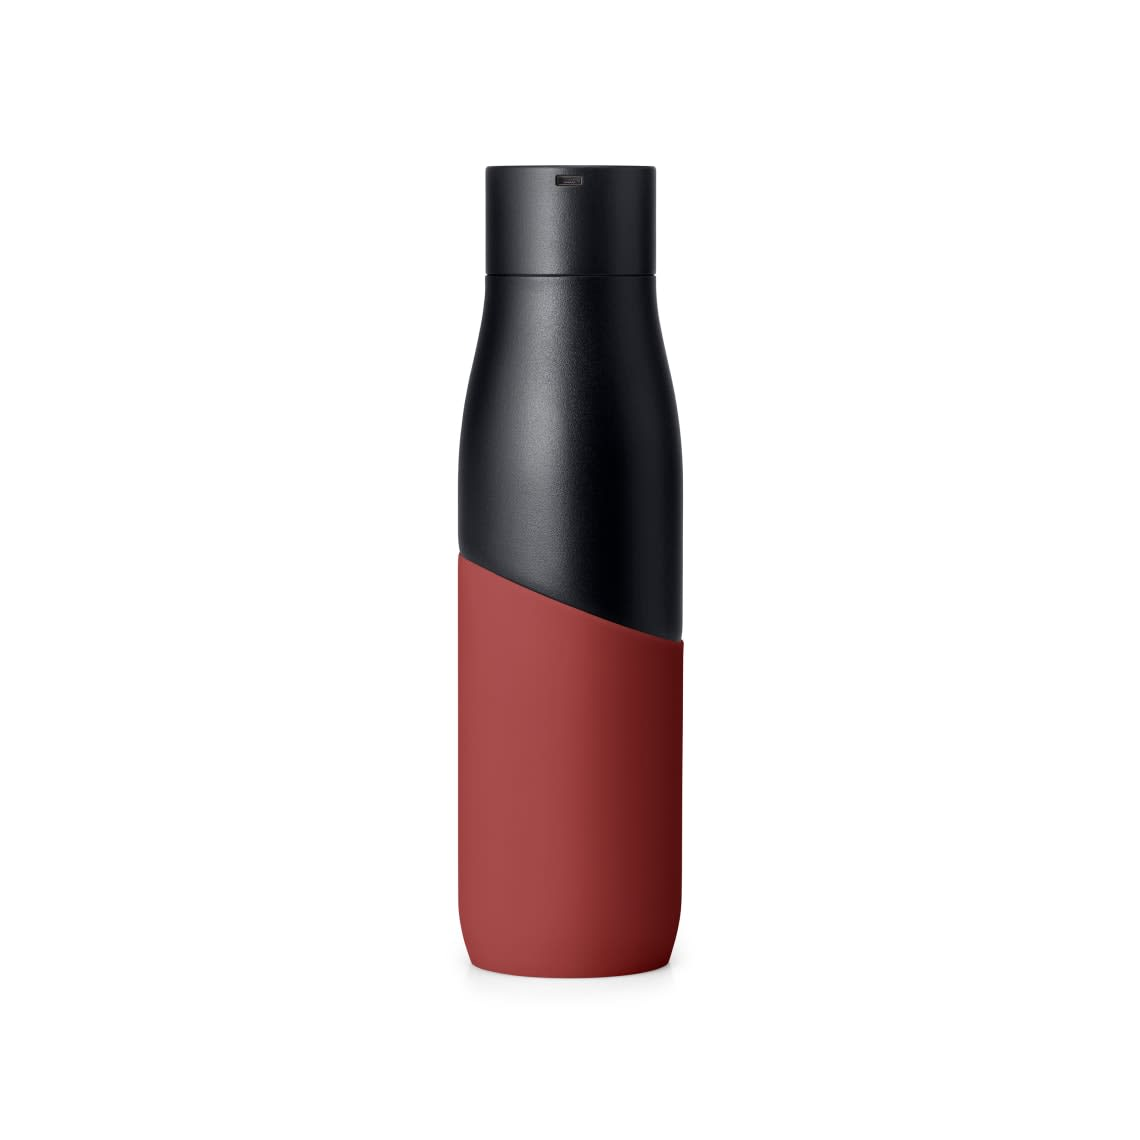 LARQ Bottle Movement PureVis - Black / Clay